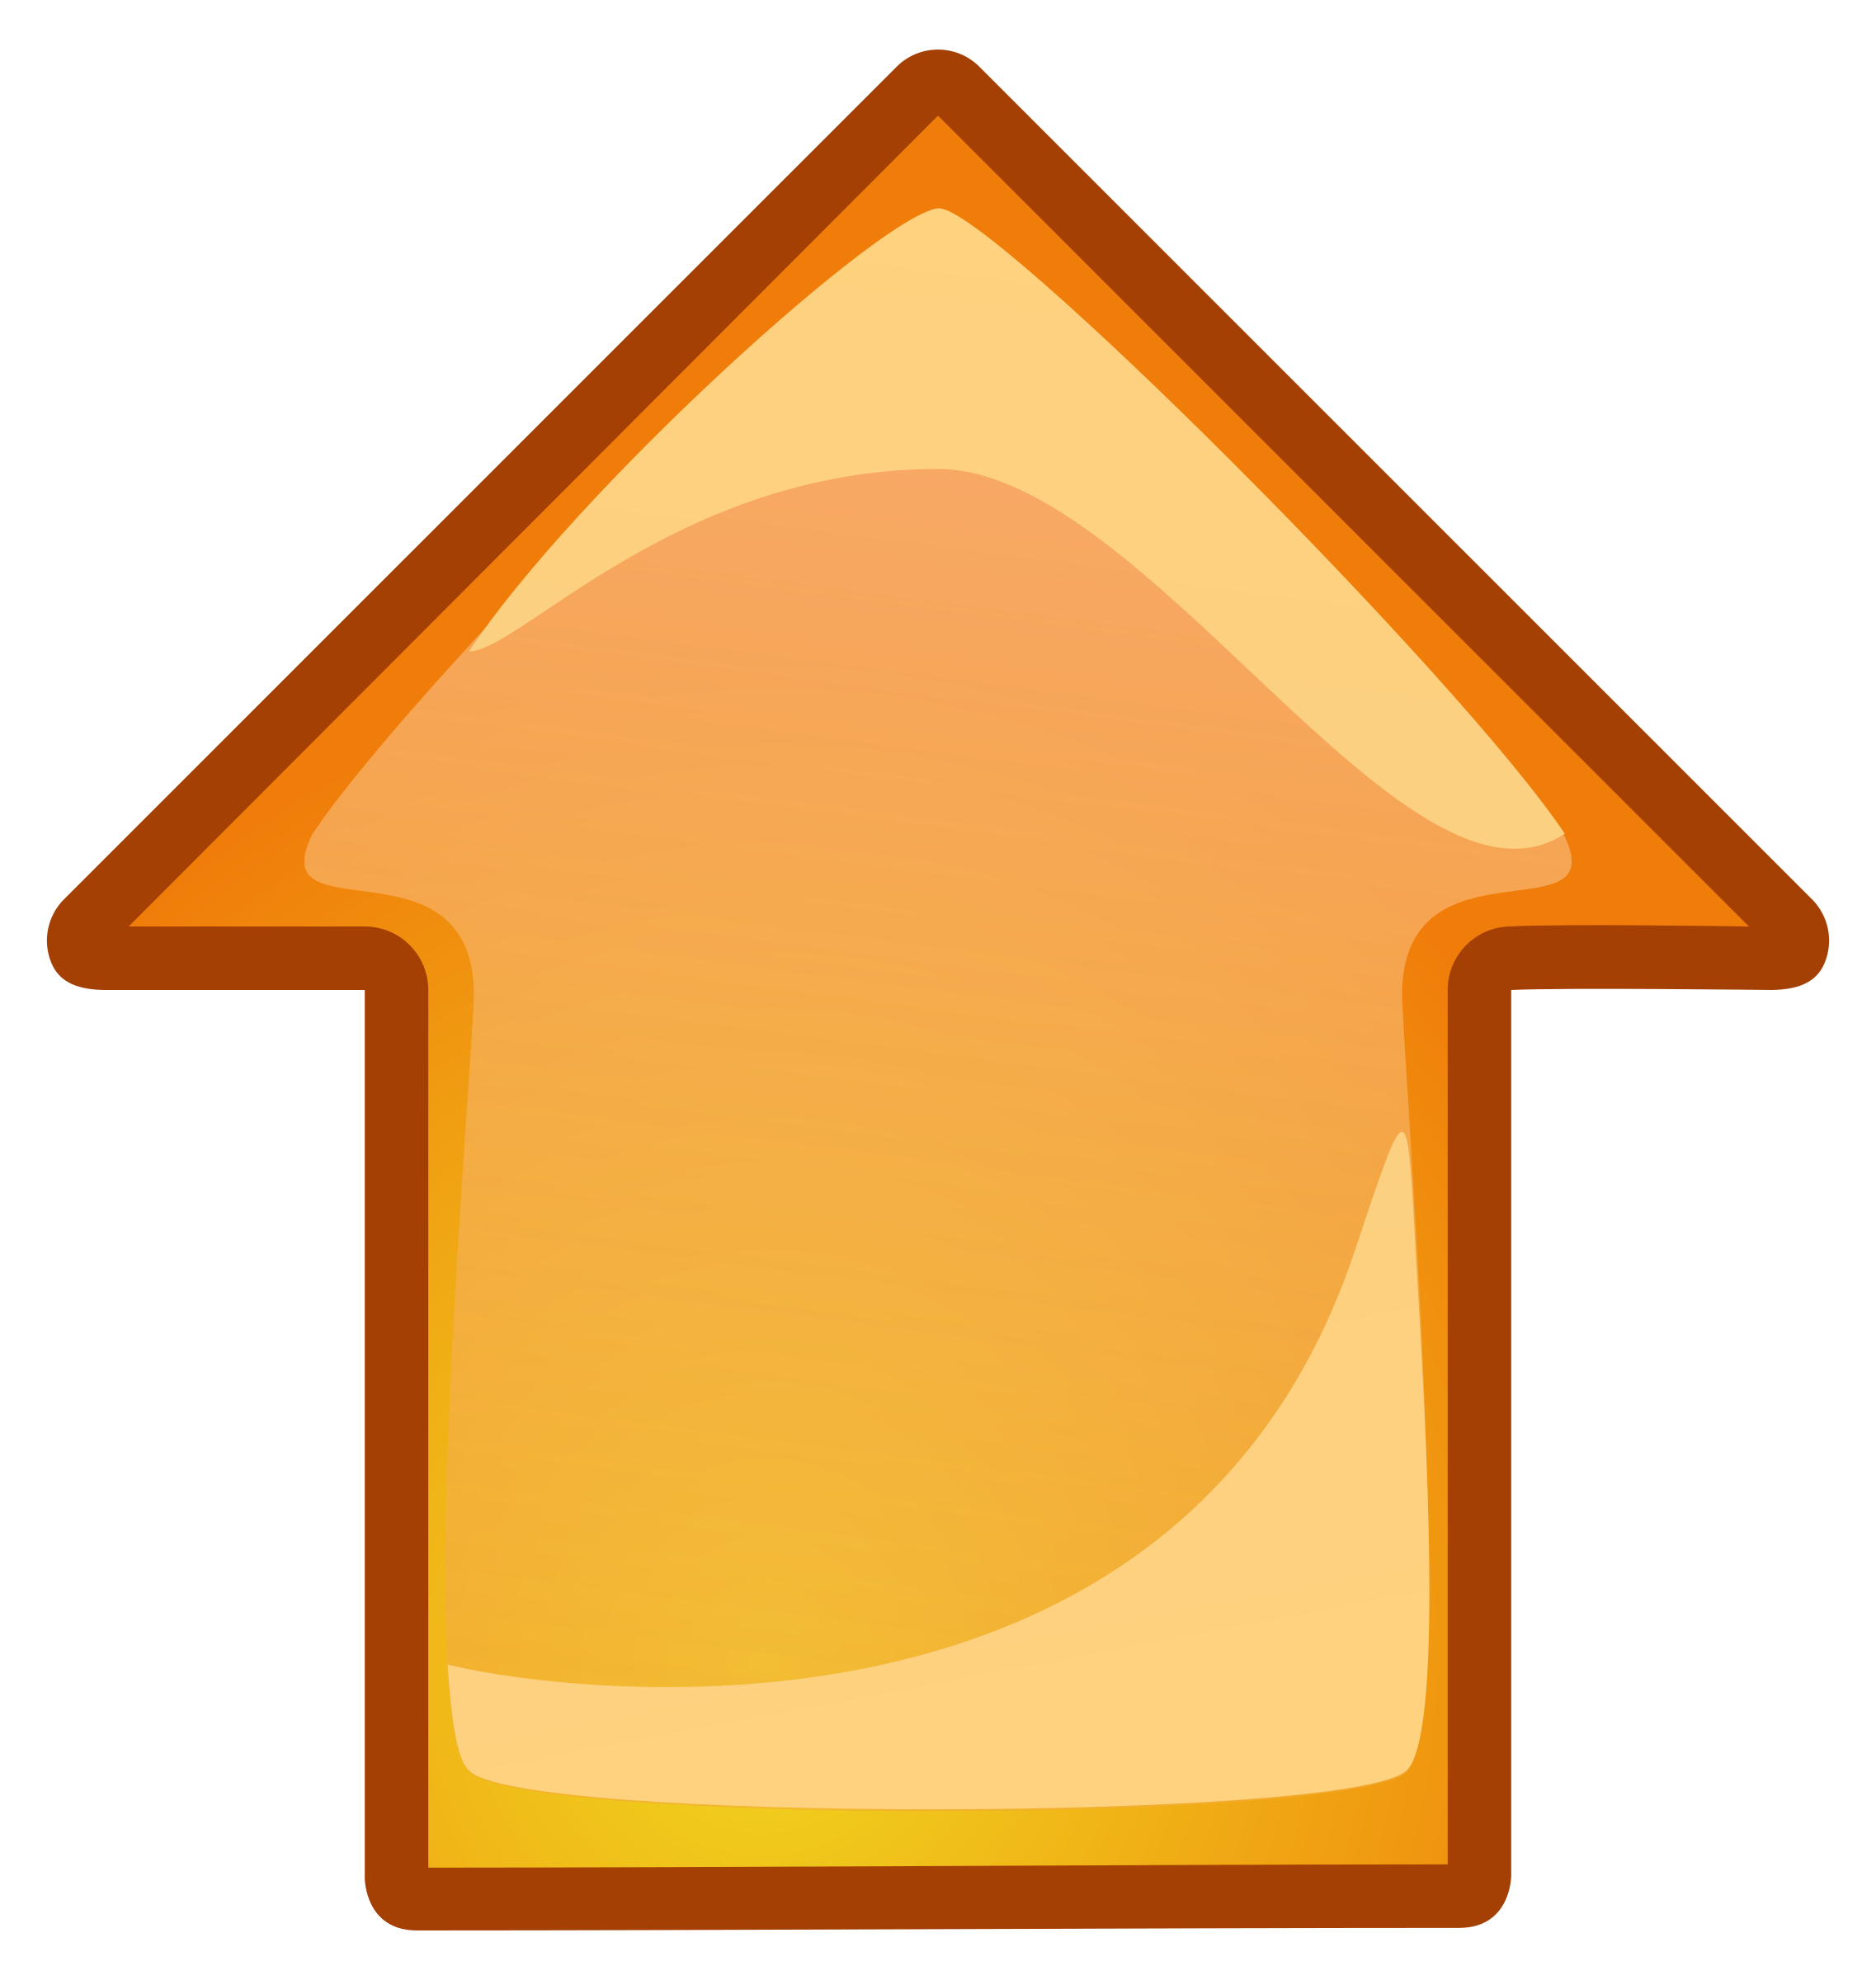 Clipart - arrow-orange-up